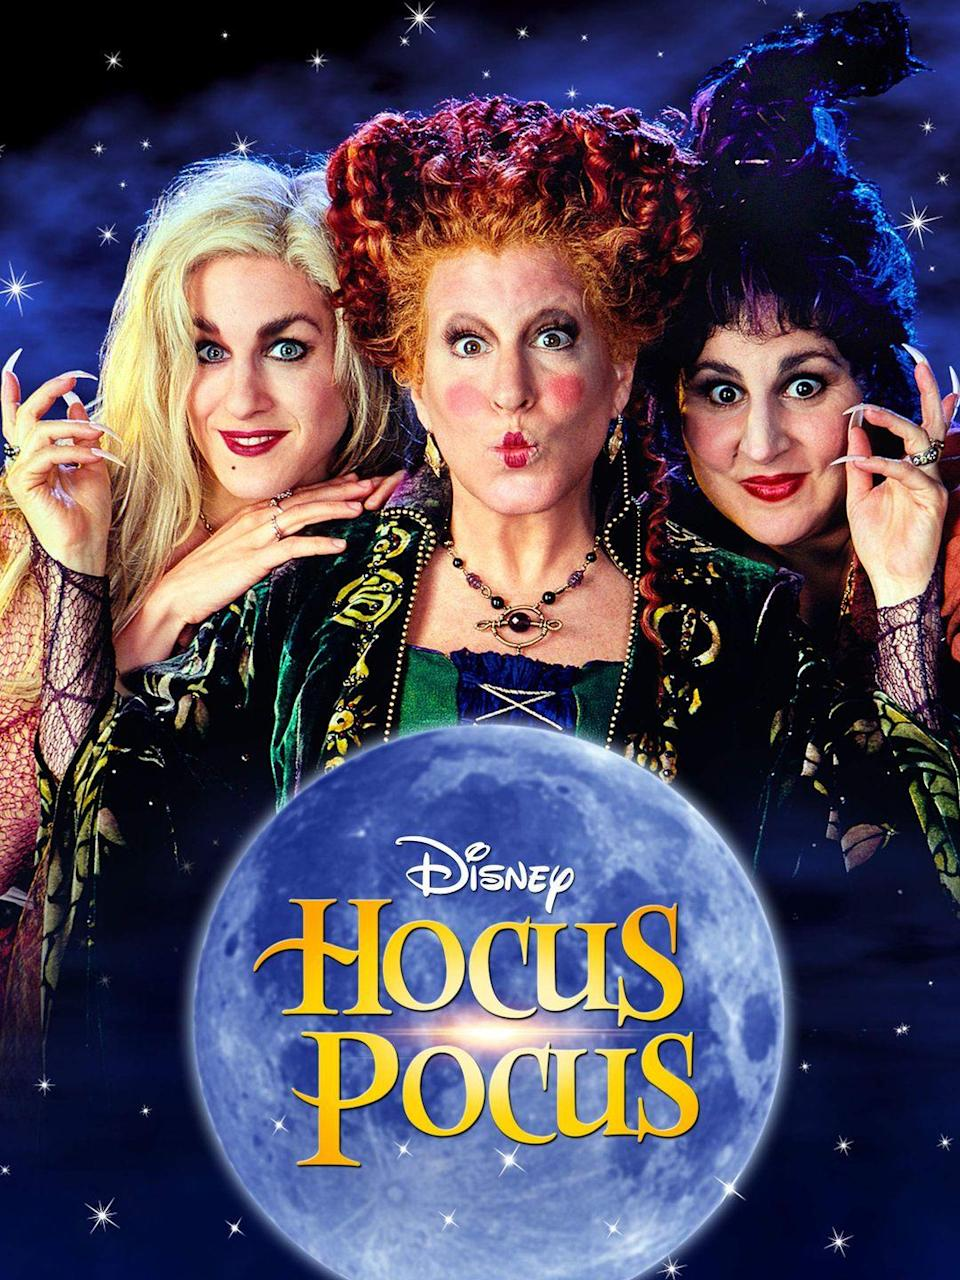 """<p>Get ready for some on-screen magic between Bette Midler, Sarah Jessica Parker, and Kathy Najimy. They play witch sisters who were — oops — executed 300 years earlier in Salem, Massachusetts. Flash forward to the '90s and they're baaaack. Modern-day trick-or-treaters, beware.</p><p><a class=""""link rapid-noclick-resp"""" href=""""https://www.amazon.com/Hocus-Pocus-Bette-Midler/dp/B004JMY312?tag=syn-yahoo-20&ascsubtag=%5Bartid%7C10070.g.37360837%5Bsrc%7Cyahoo-us"""" rel=""""nofollow noopener"""" target=""""_blank"""" data-ylk=""""slk:WATCH NOW"""">WATCH NOW</a></p>"""